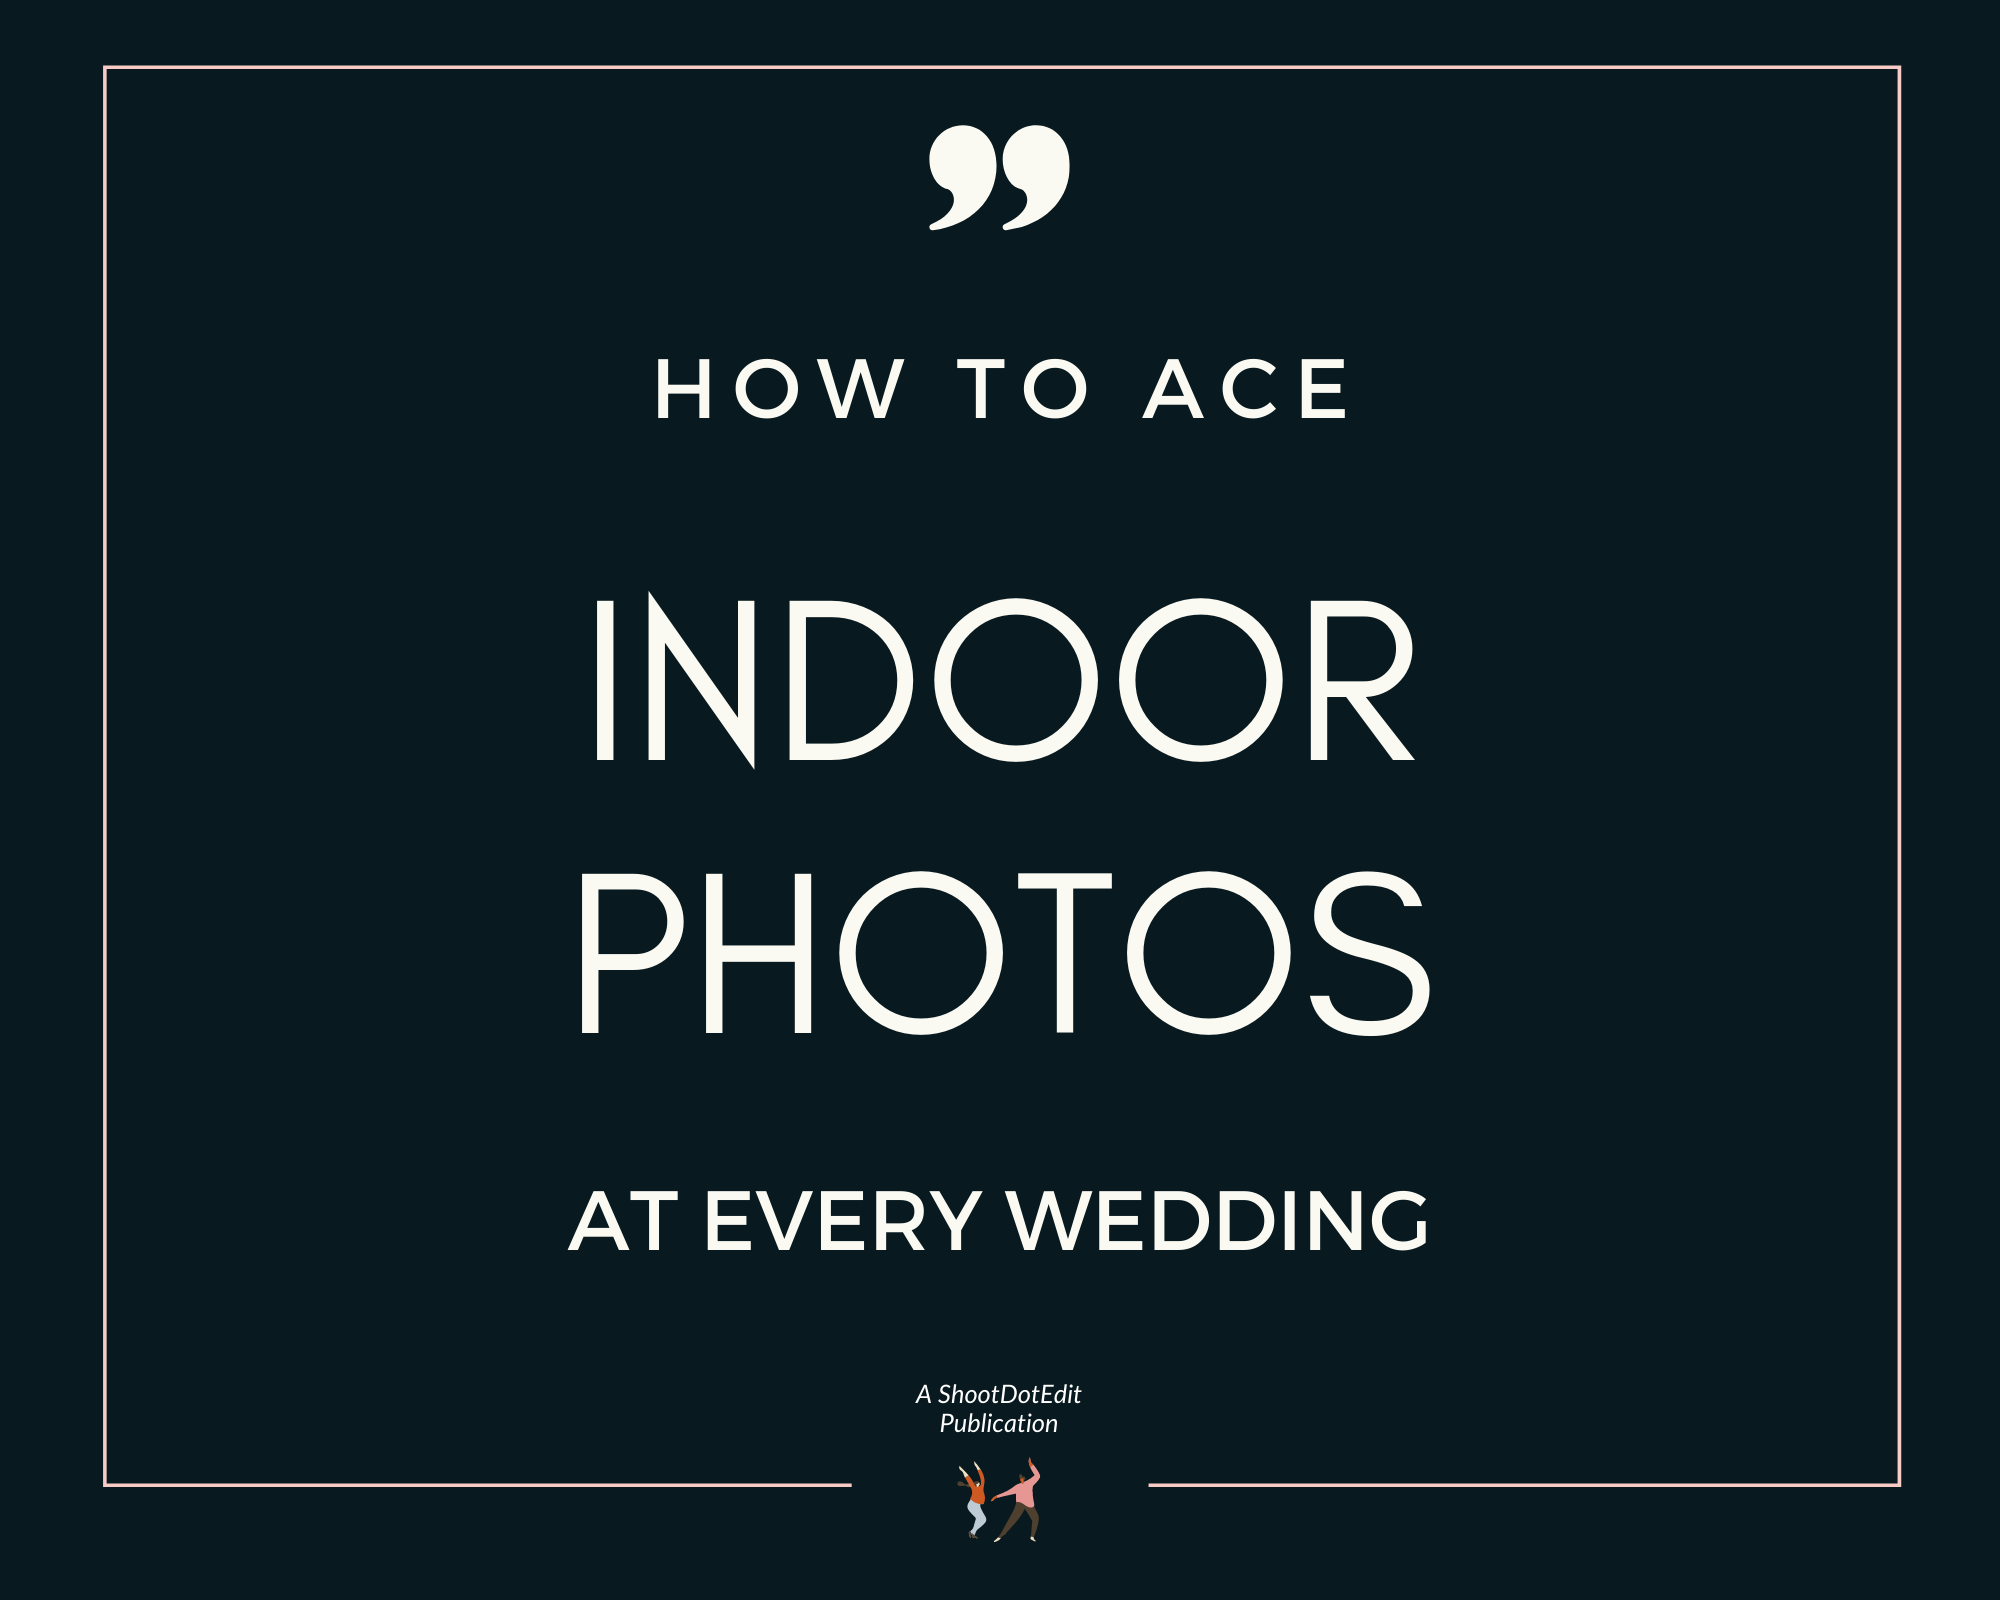 Infographic stating how to ace indoor photos at every wedding